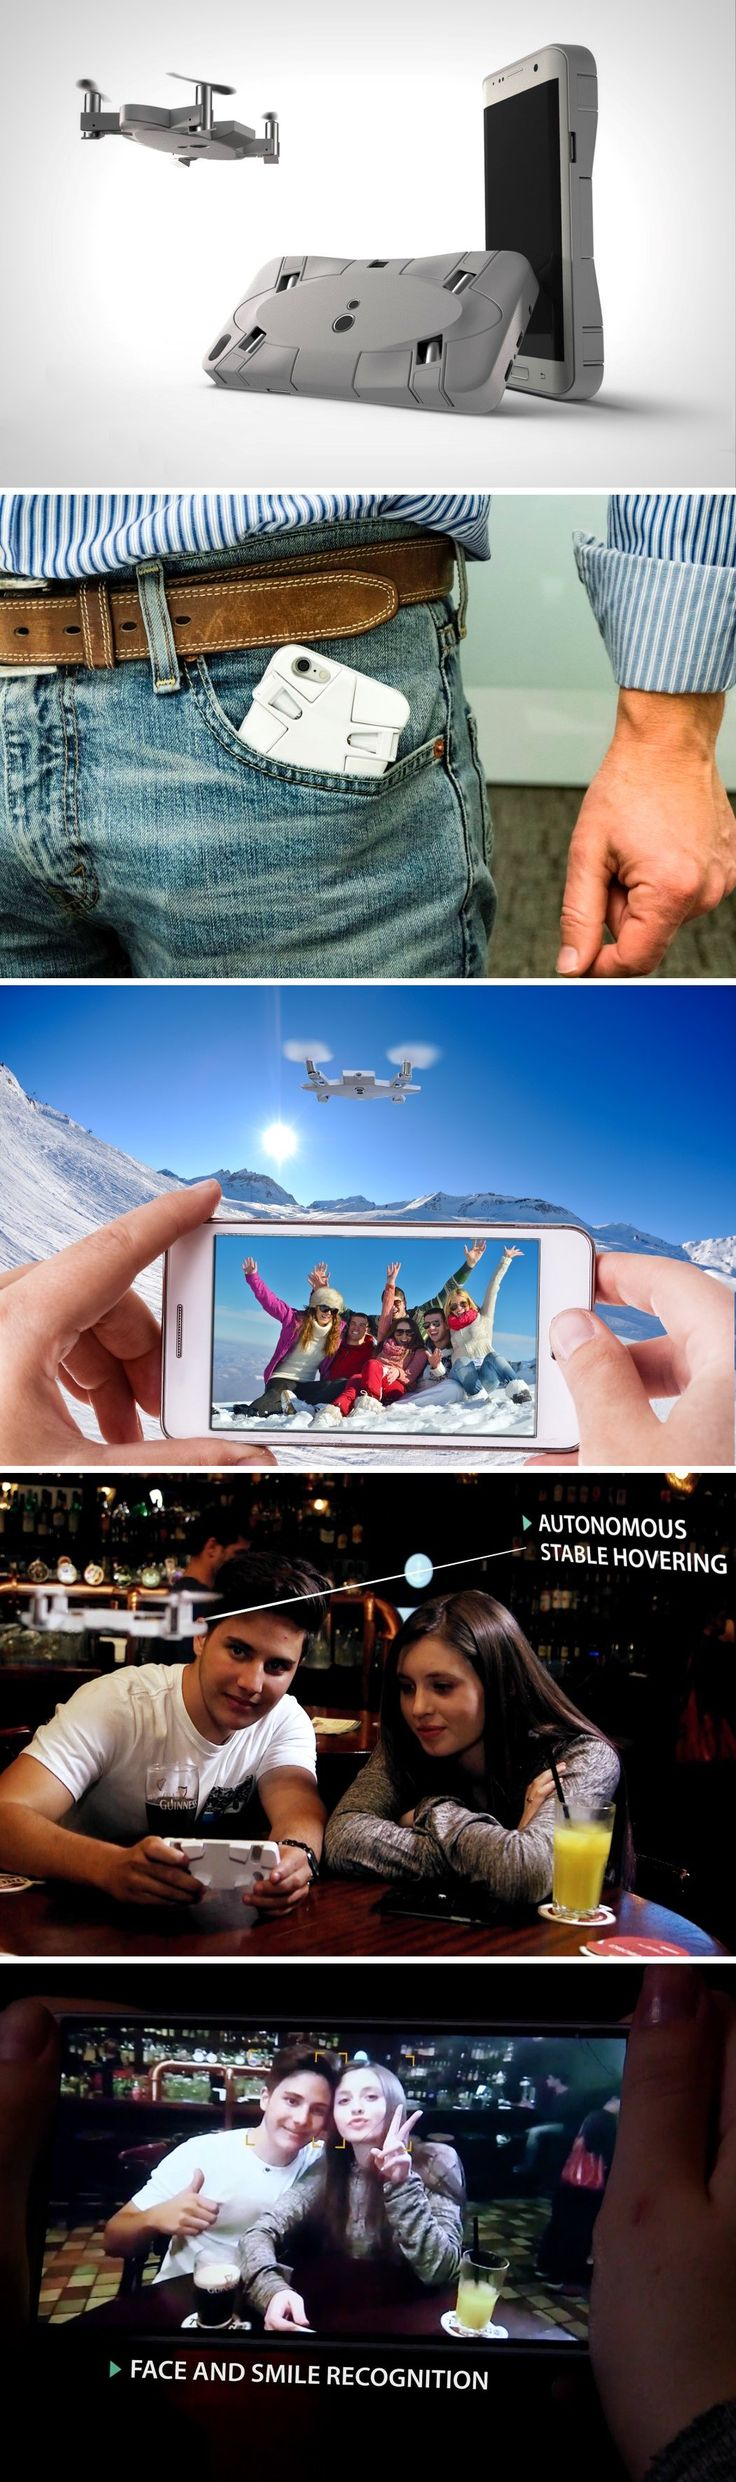 Selfly's drone is roughly the size and thickness of your phone. When it folds up, it snaps right onto the back of your regular smartphone, integrating with your mobile phone in such a way, you won't even know you have the world's smallest personal flying camera in your pocket with you!